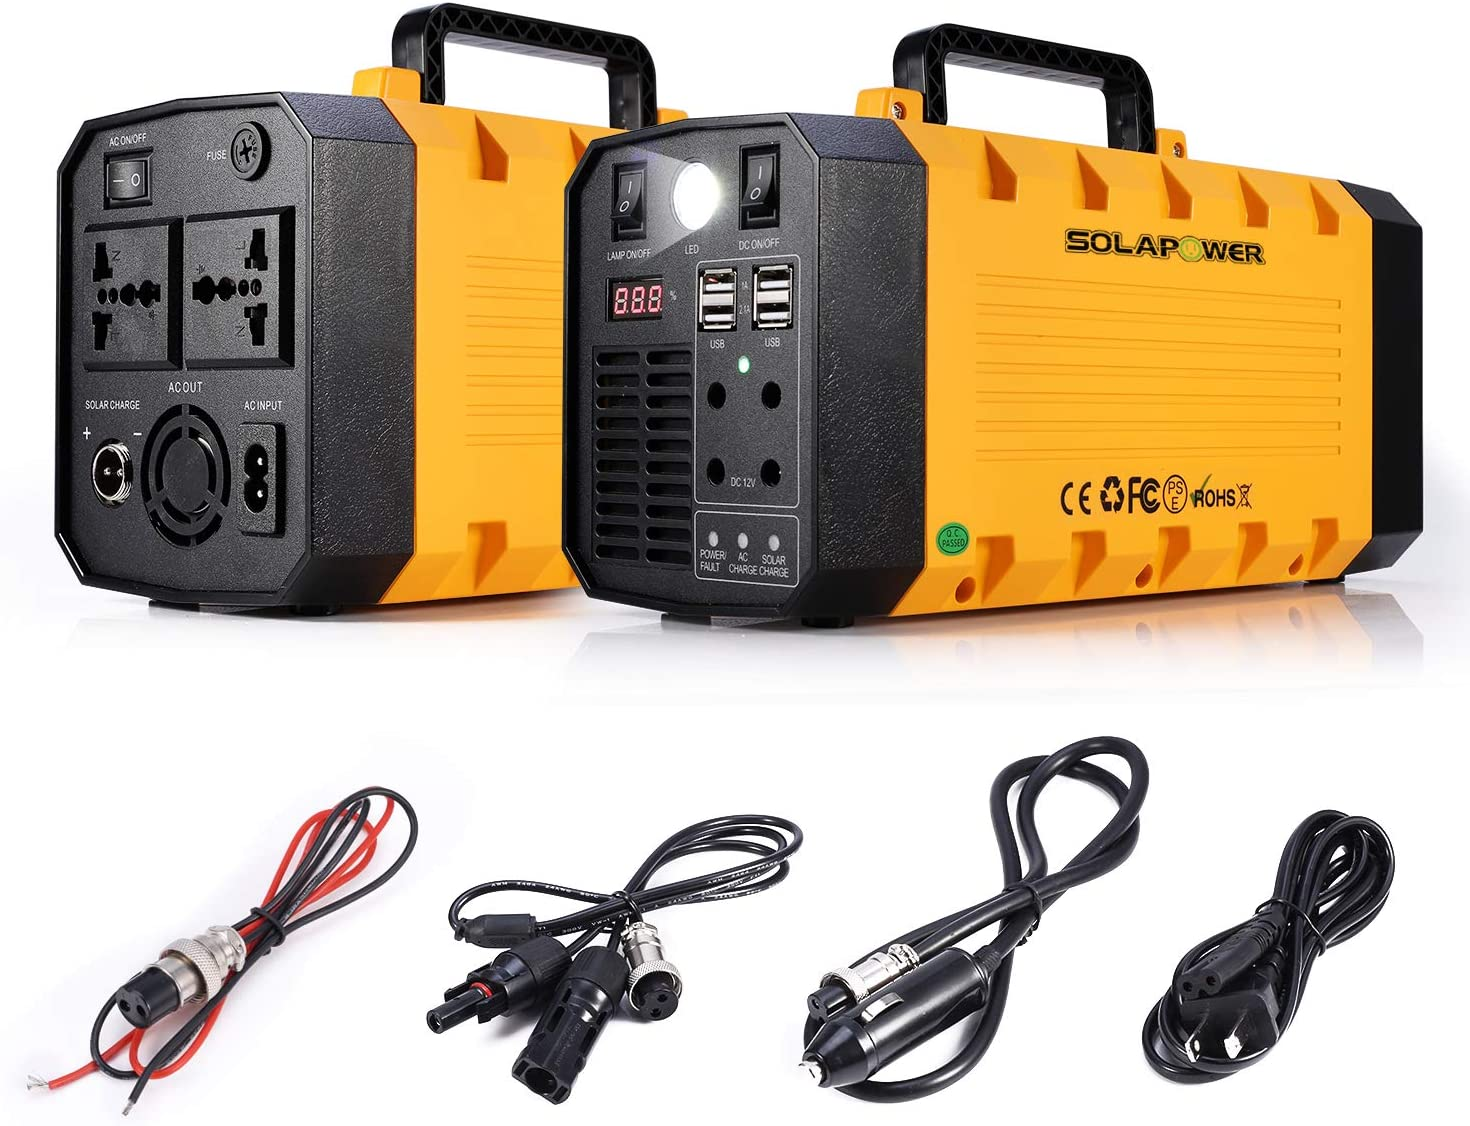 SOLAPOWER 500W Generator Portable Power Station- UPS 500W Continuous 1000w Peak -Lithium Battery Inverter with 110V AC Outlet, 4 DC 12V Ports, 4 USB, Solar Generators for Camping CPAP Emergency Home